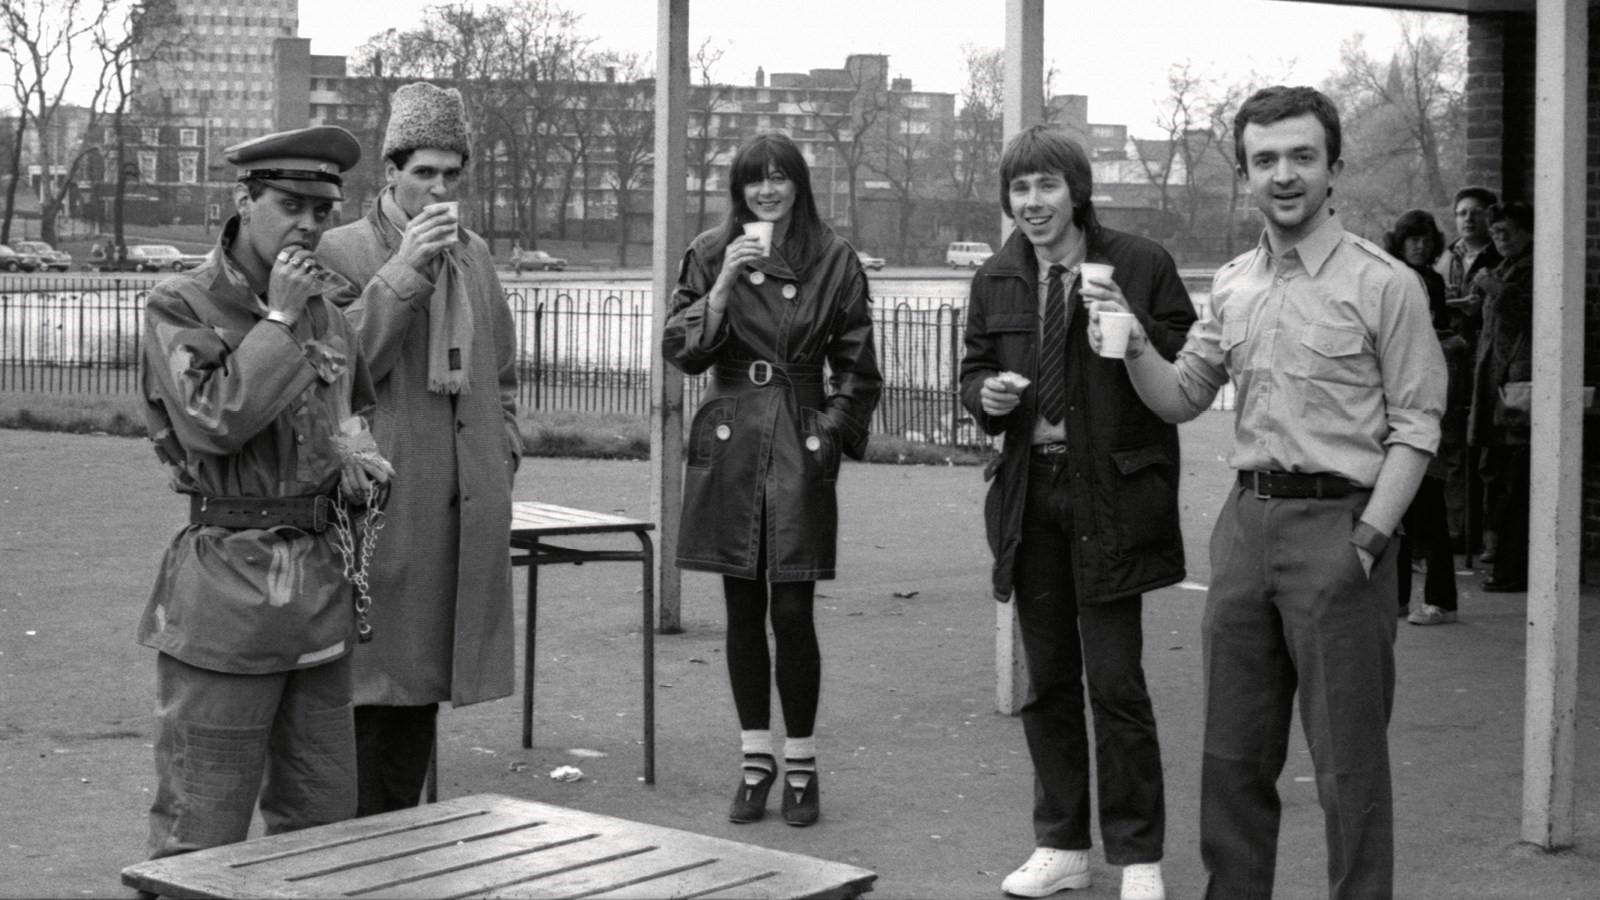 Members of Throbbing Gristle in Victoria Park, Hackney, 1981